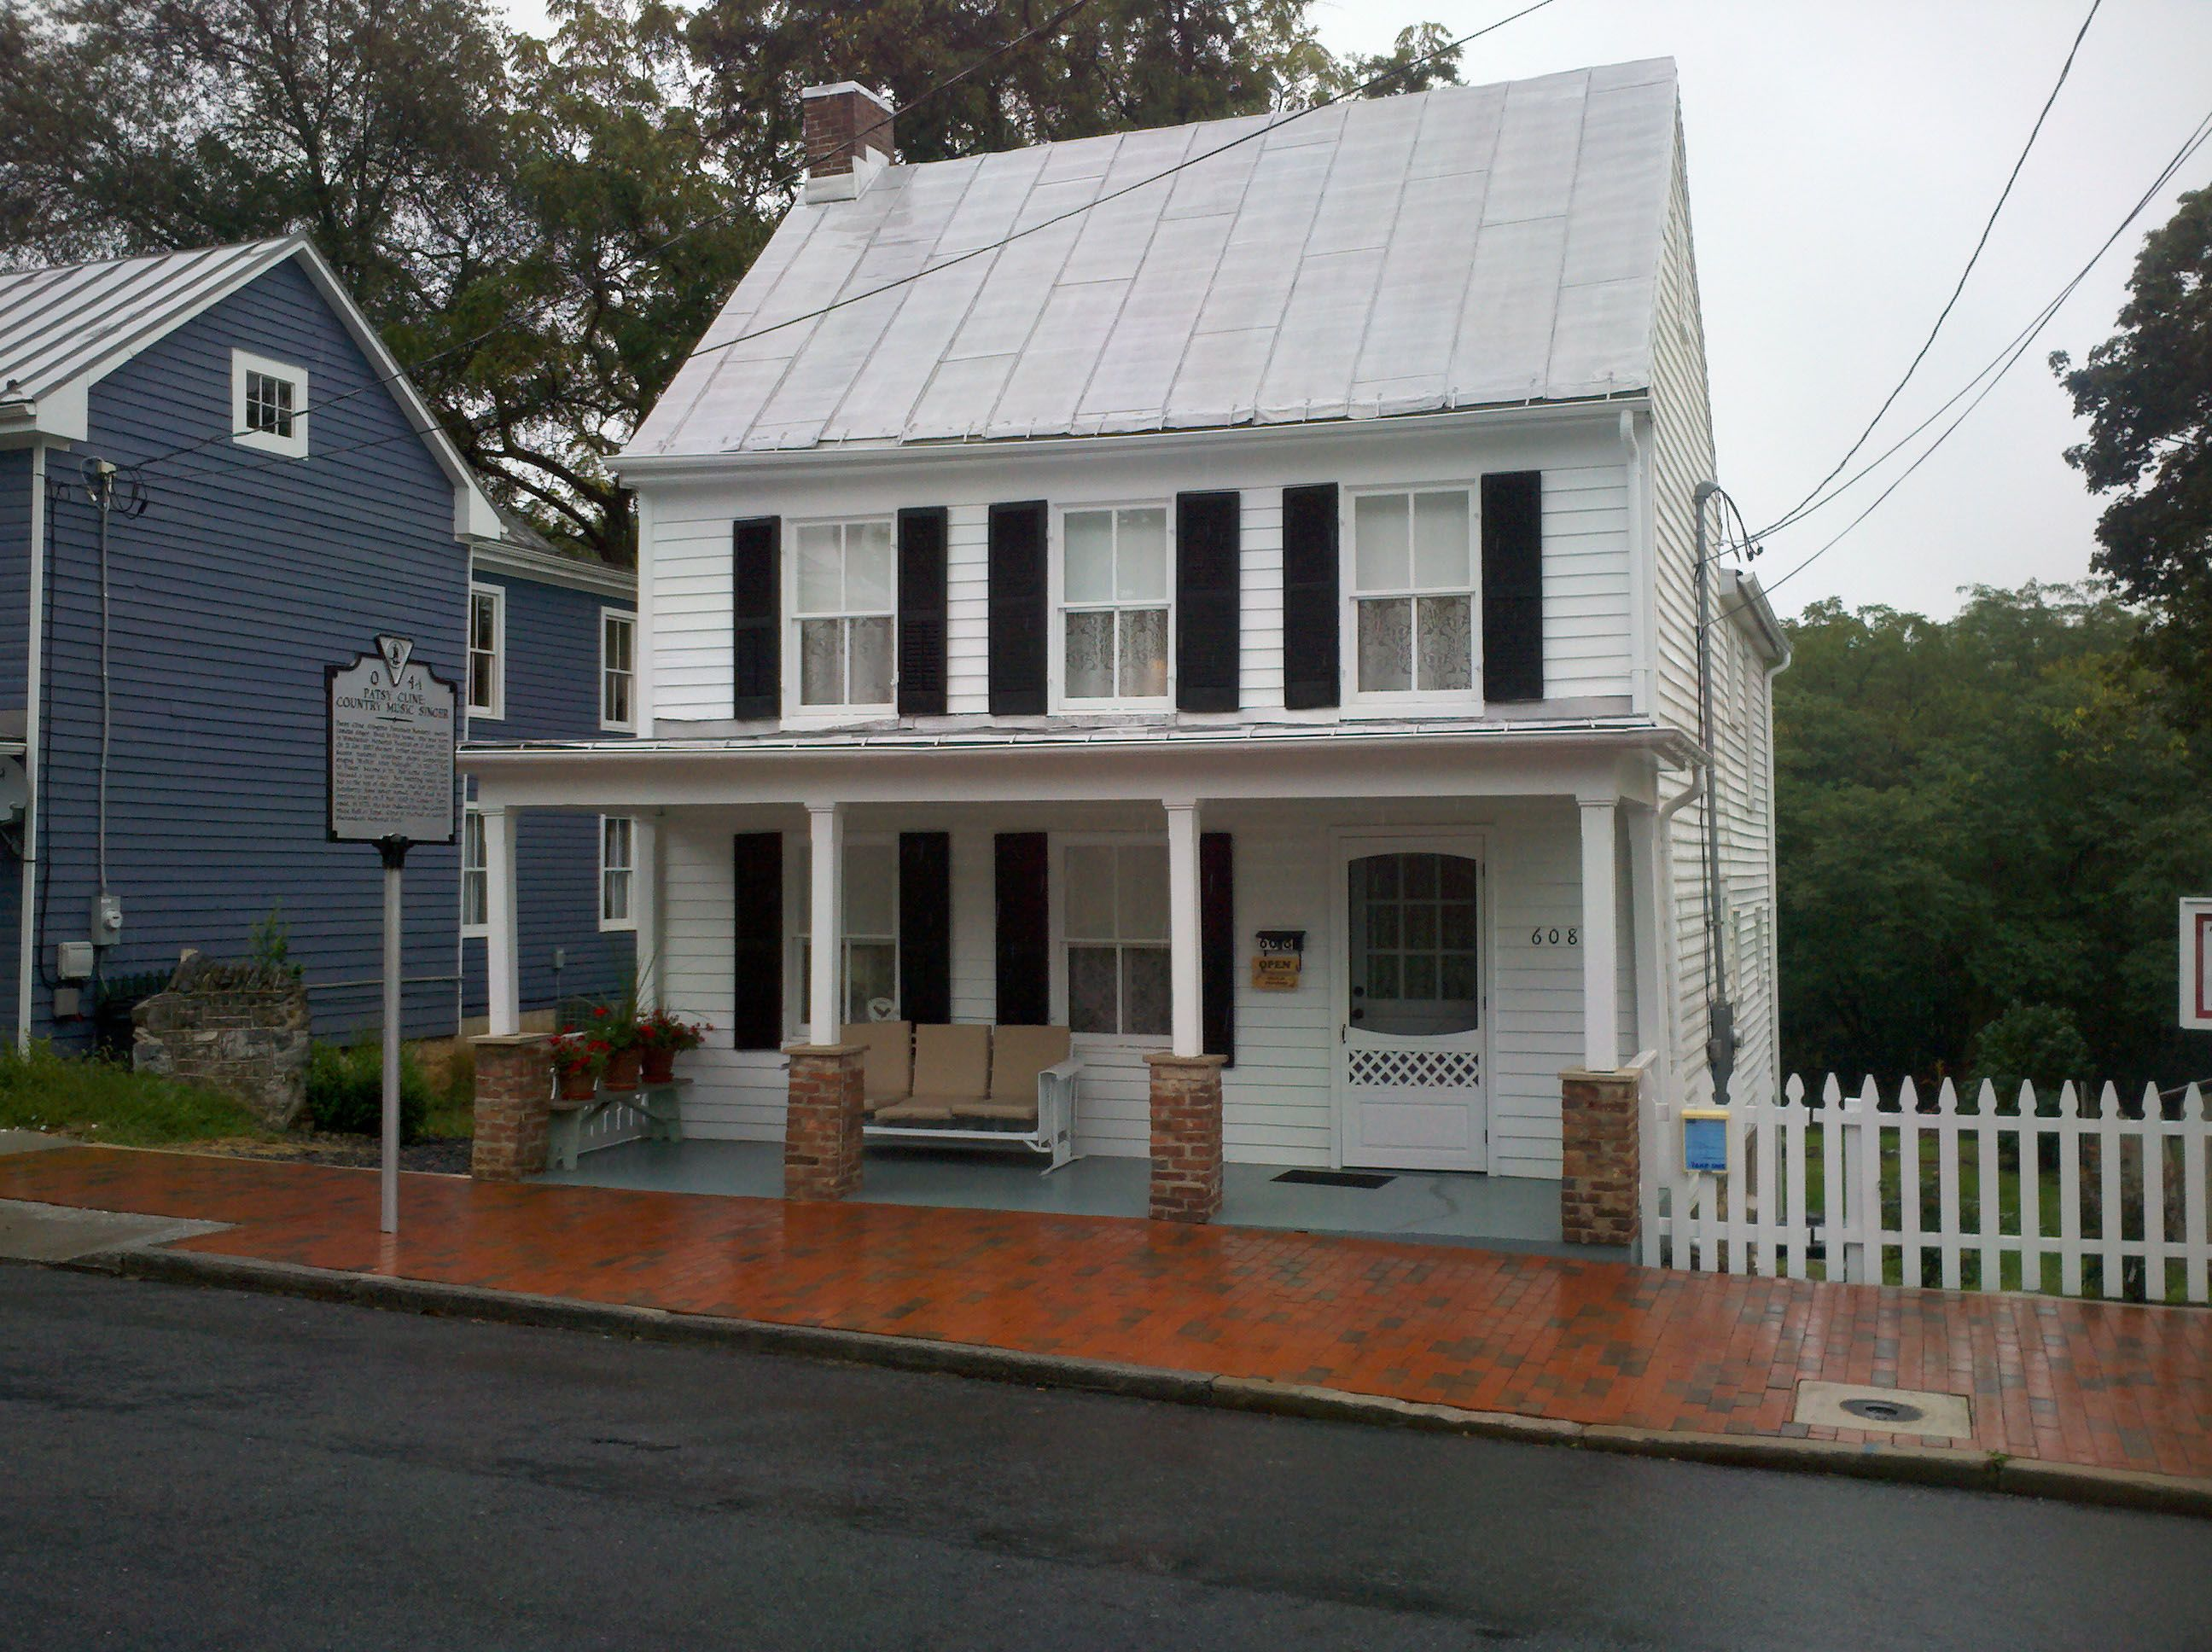 The Patsy Cline House In Winchester Va About Twenty Minutes From Where I Live Historic Homes Winchester Virginia Patsy Cline